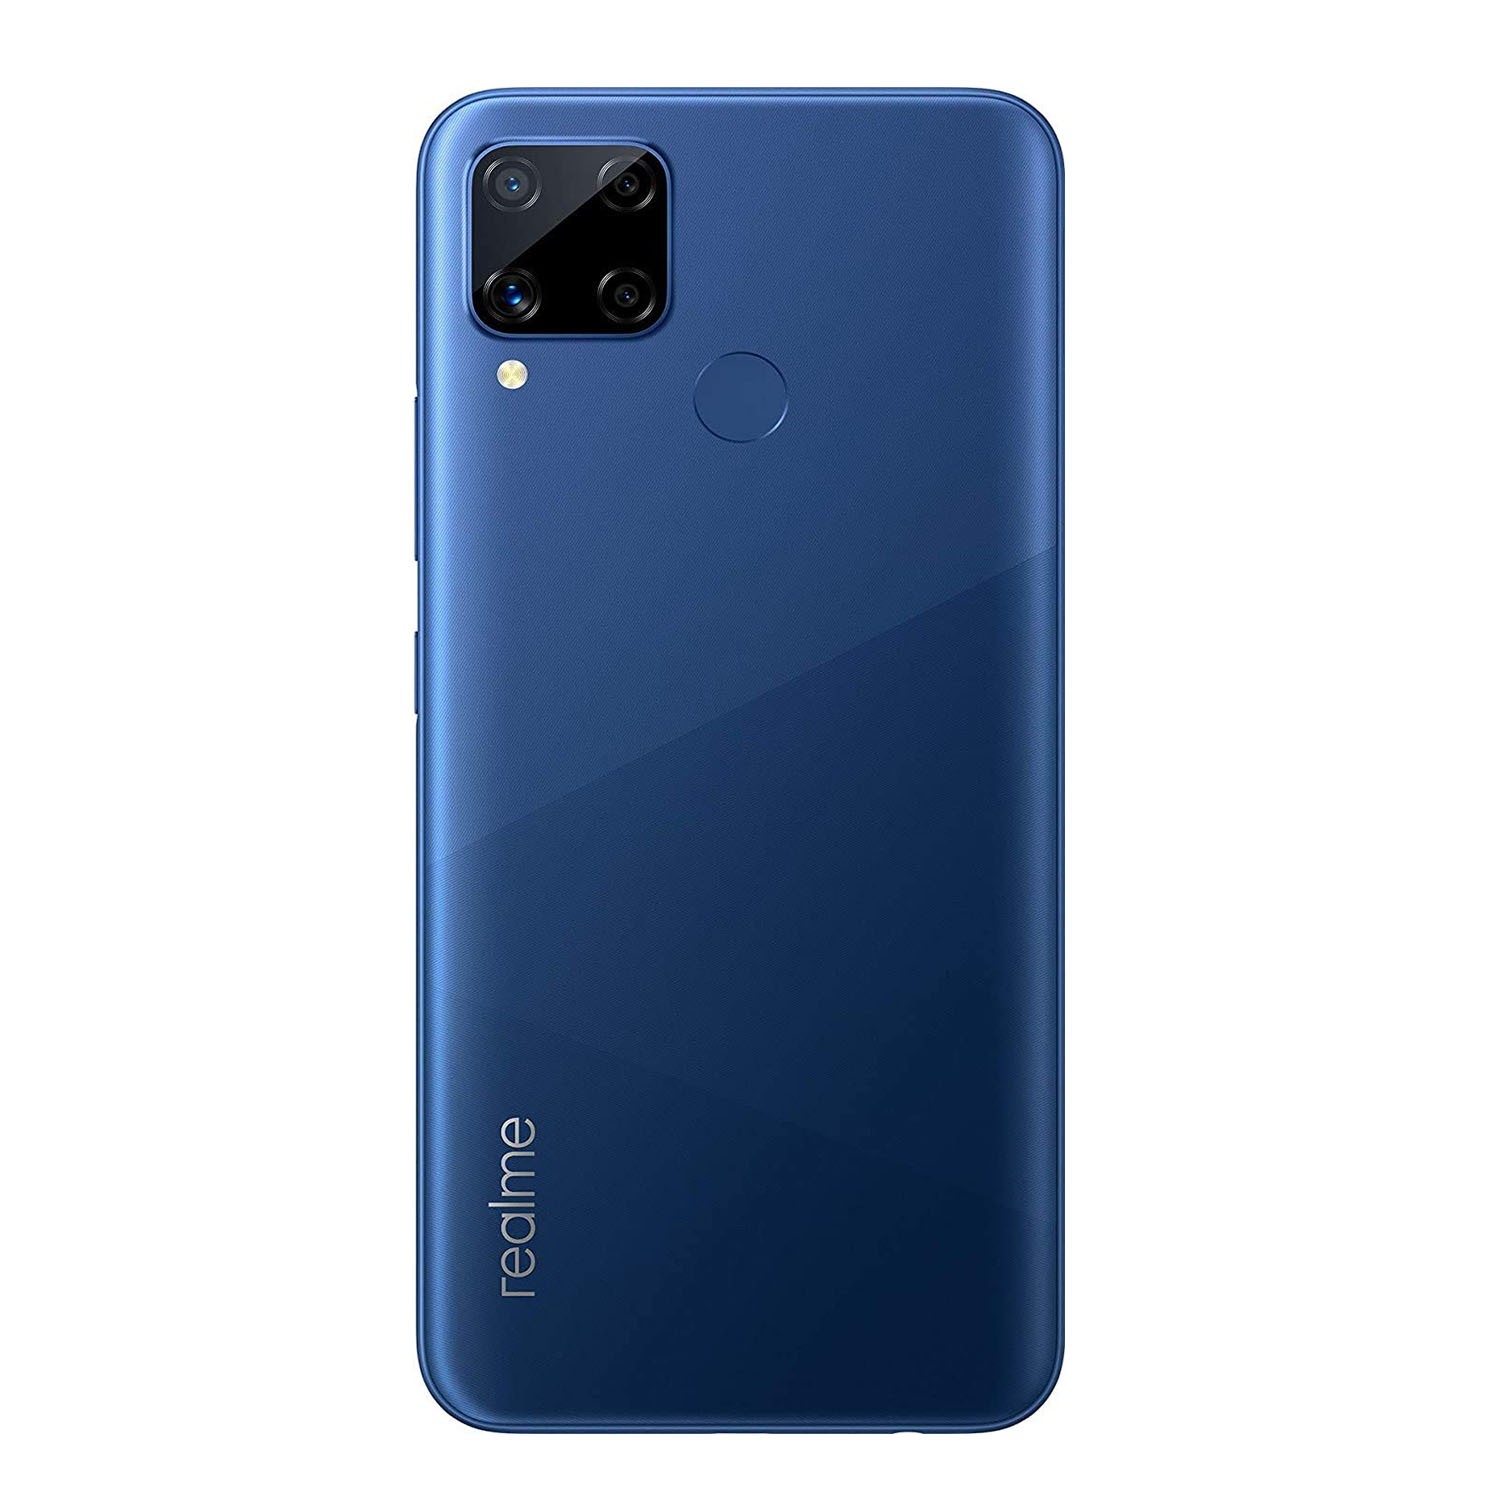 Realme C15 4GB RAM, 64GB Memory (Power Blue)